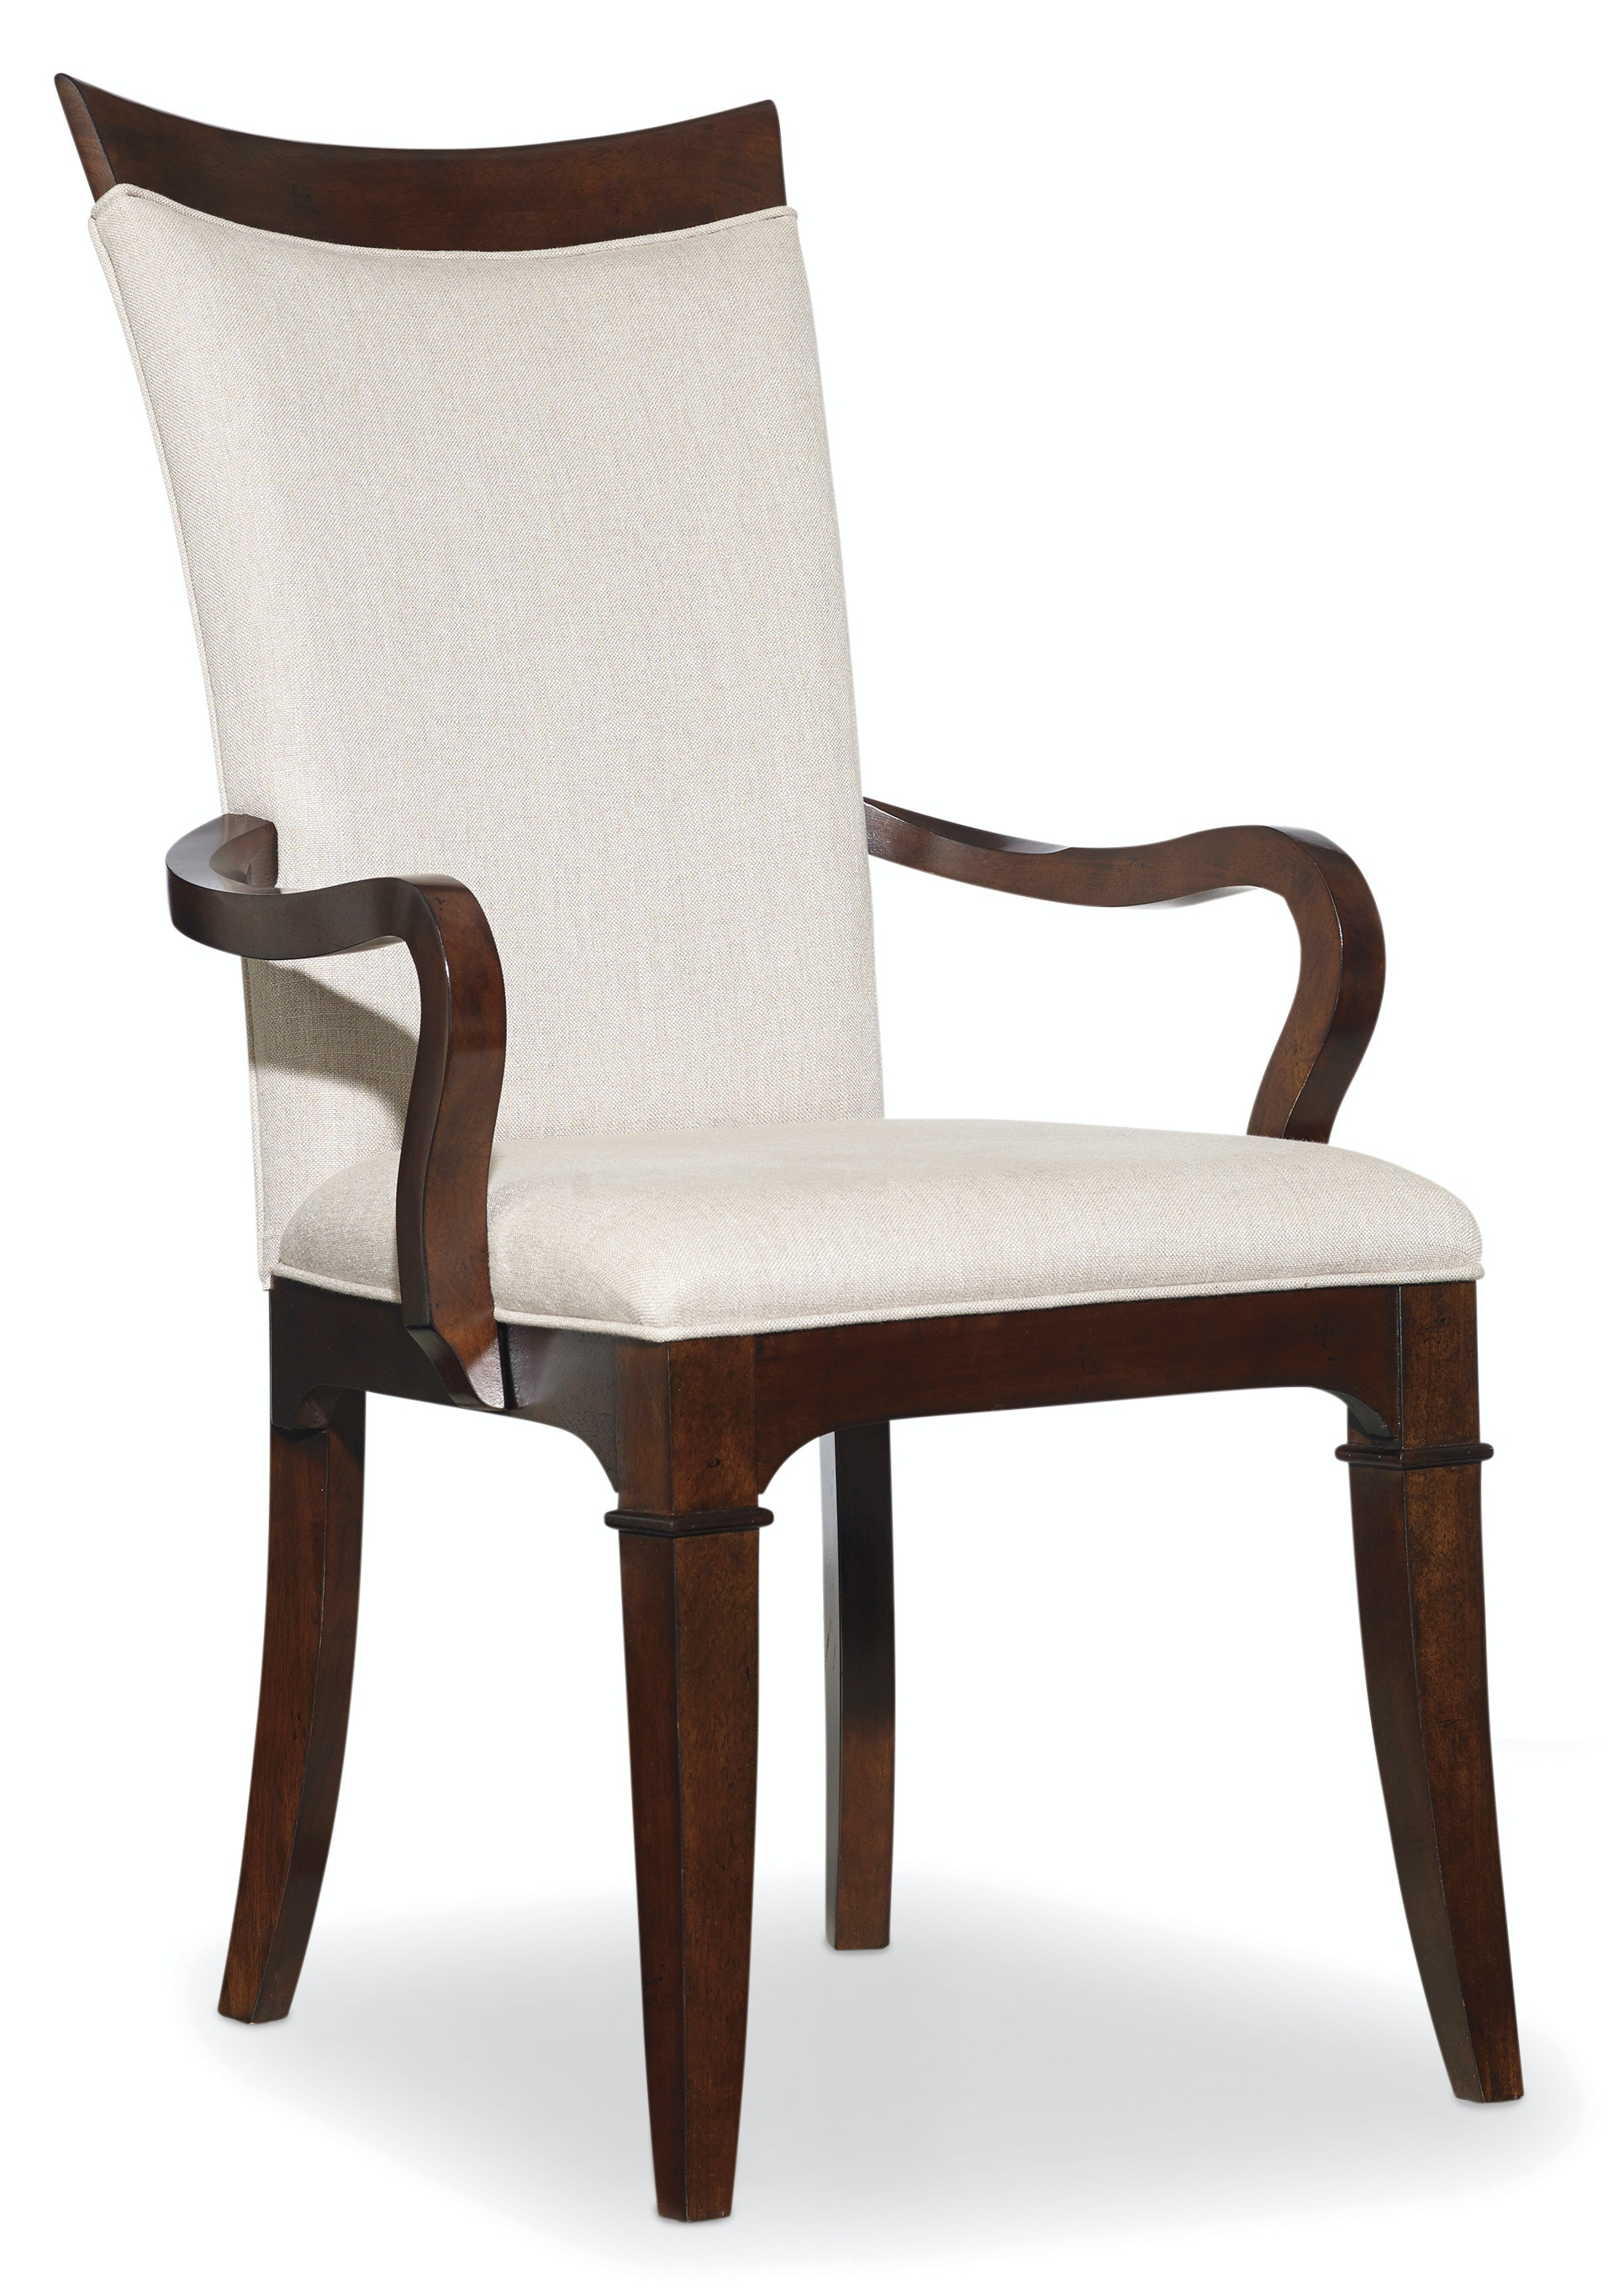 Beau Hooker Furniture Palisade Upholstered Arm Chair 5183 75400